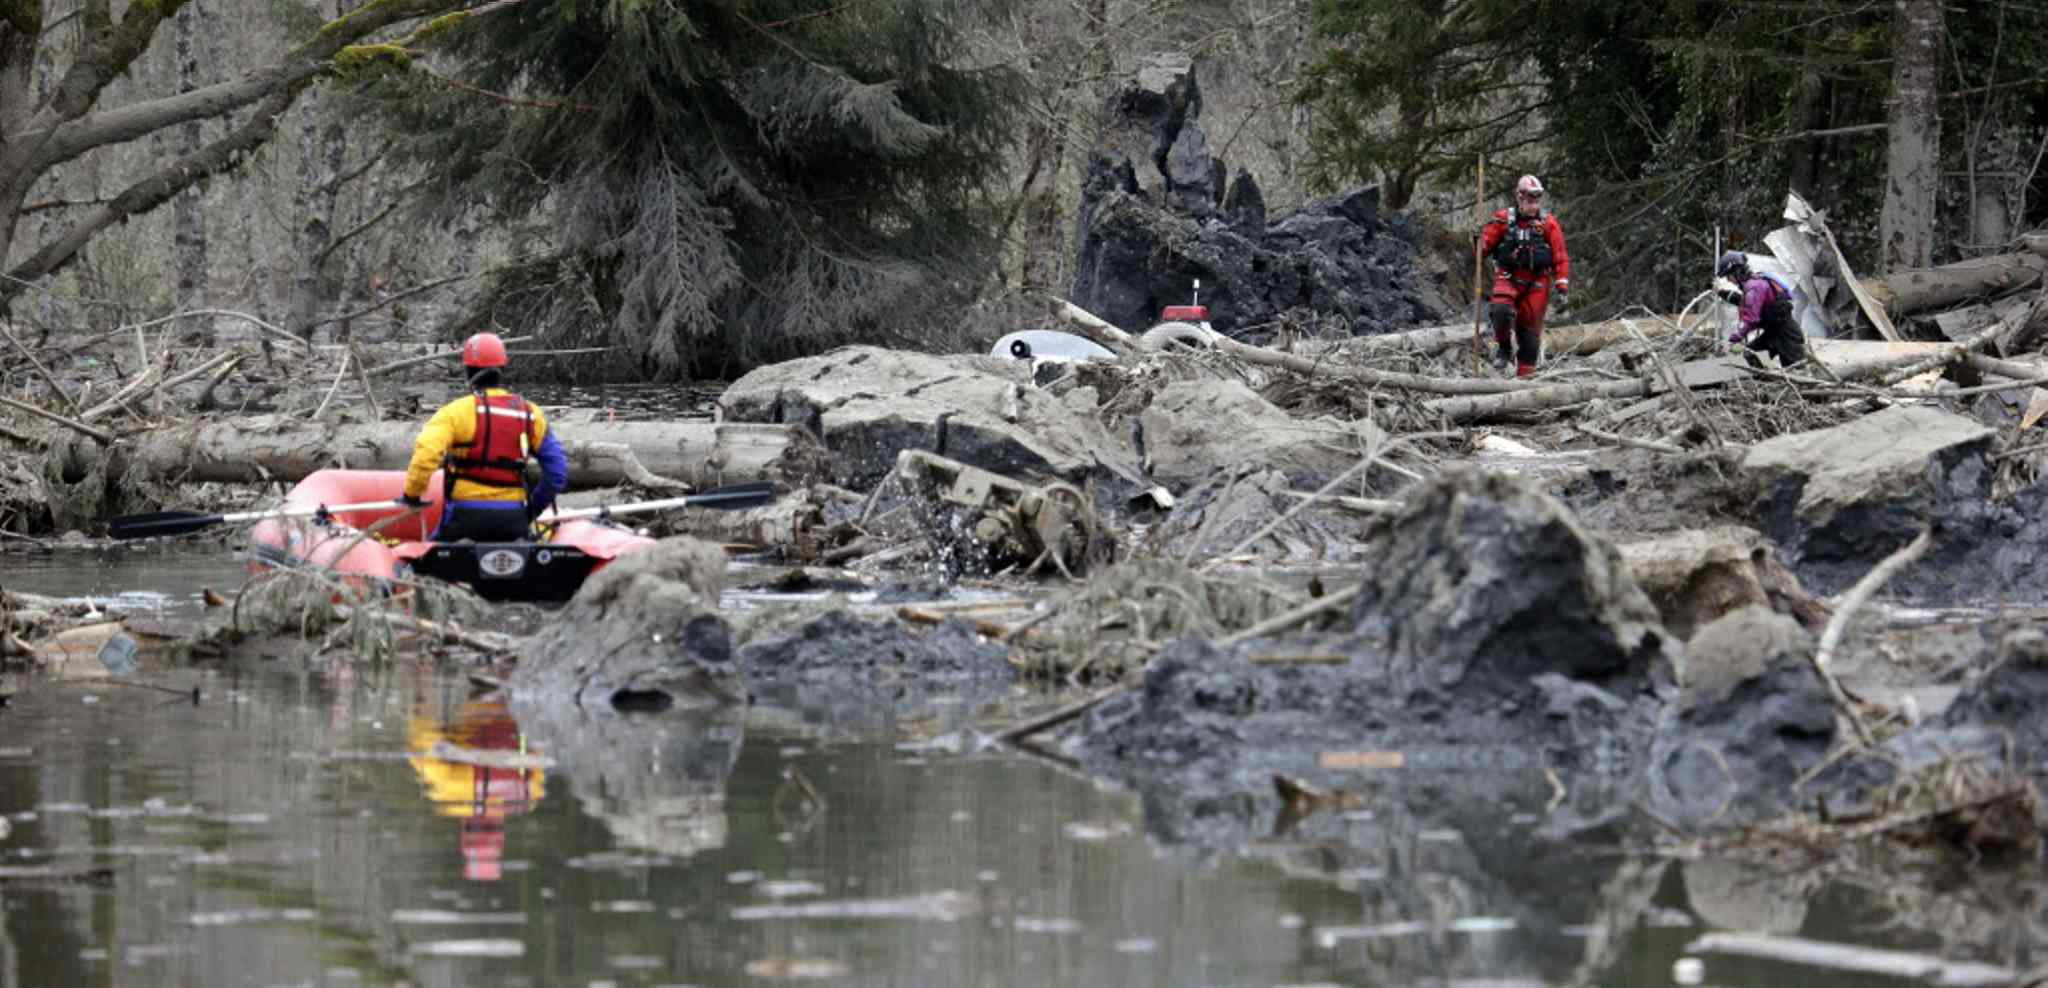 Searchers on water and land look through debris following the mudslide in Oso, Wash.